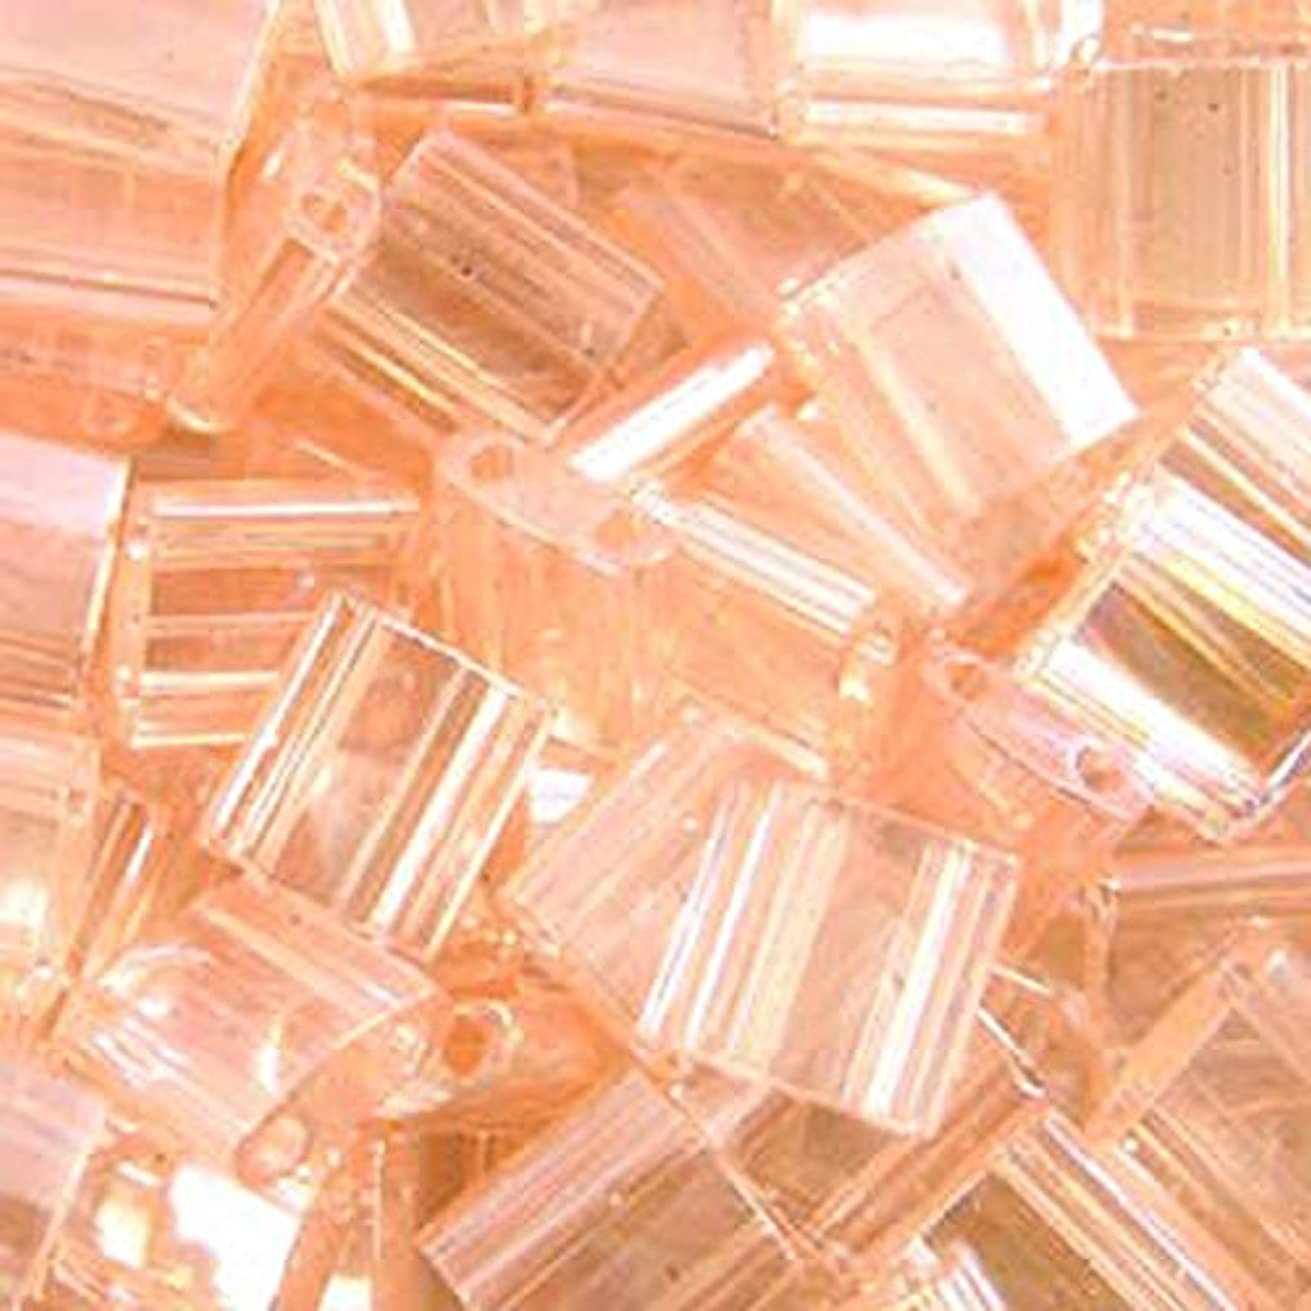 Light Rose Luster Tila Beads 7.2 Gram Tube By Miyuki Are a 2 Hole Flat Square Seed Bead 5x5mm 1.9mm Thick with .8mm Holes